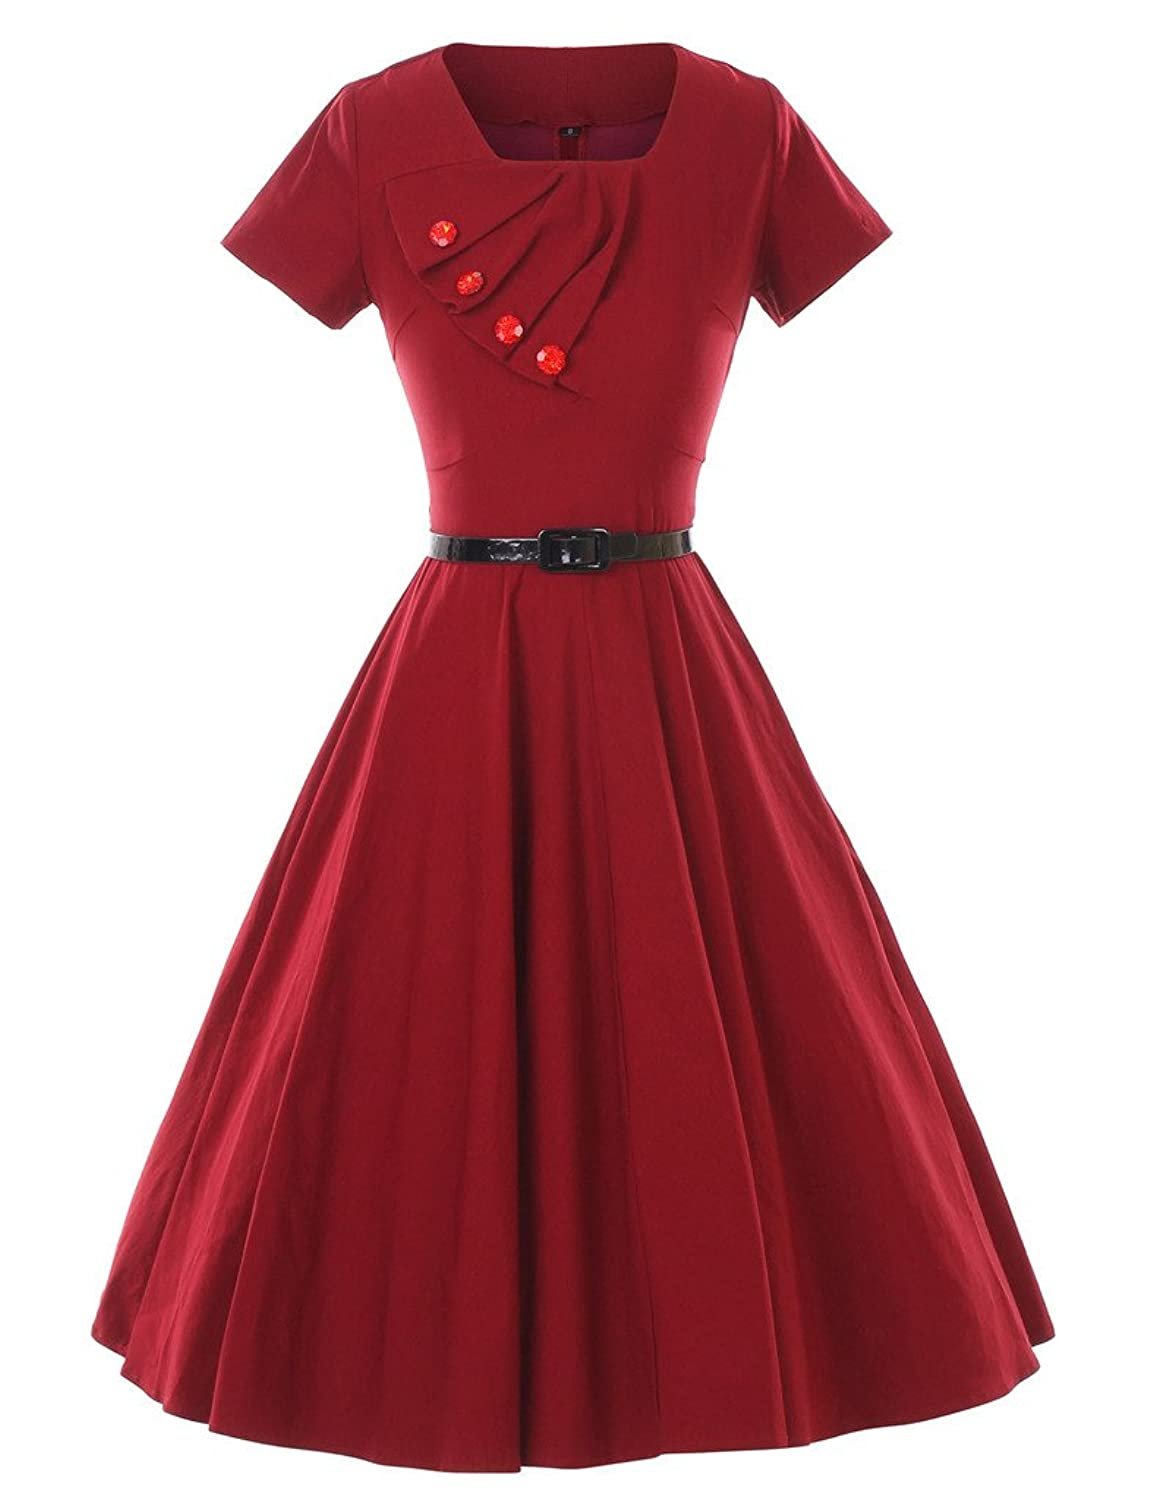 Vintage Inspired Halloween Costumes GownTown 1950s Retro Vintage Short Sleeve Party Swing Stretchy Dresses $38.98 AT vintagedancer.com